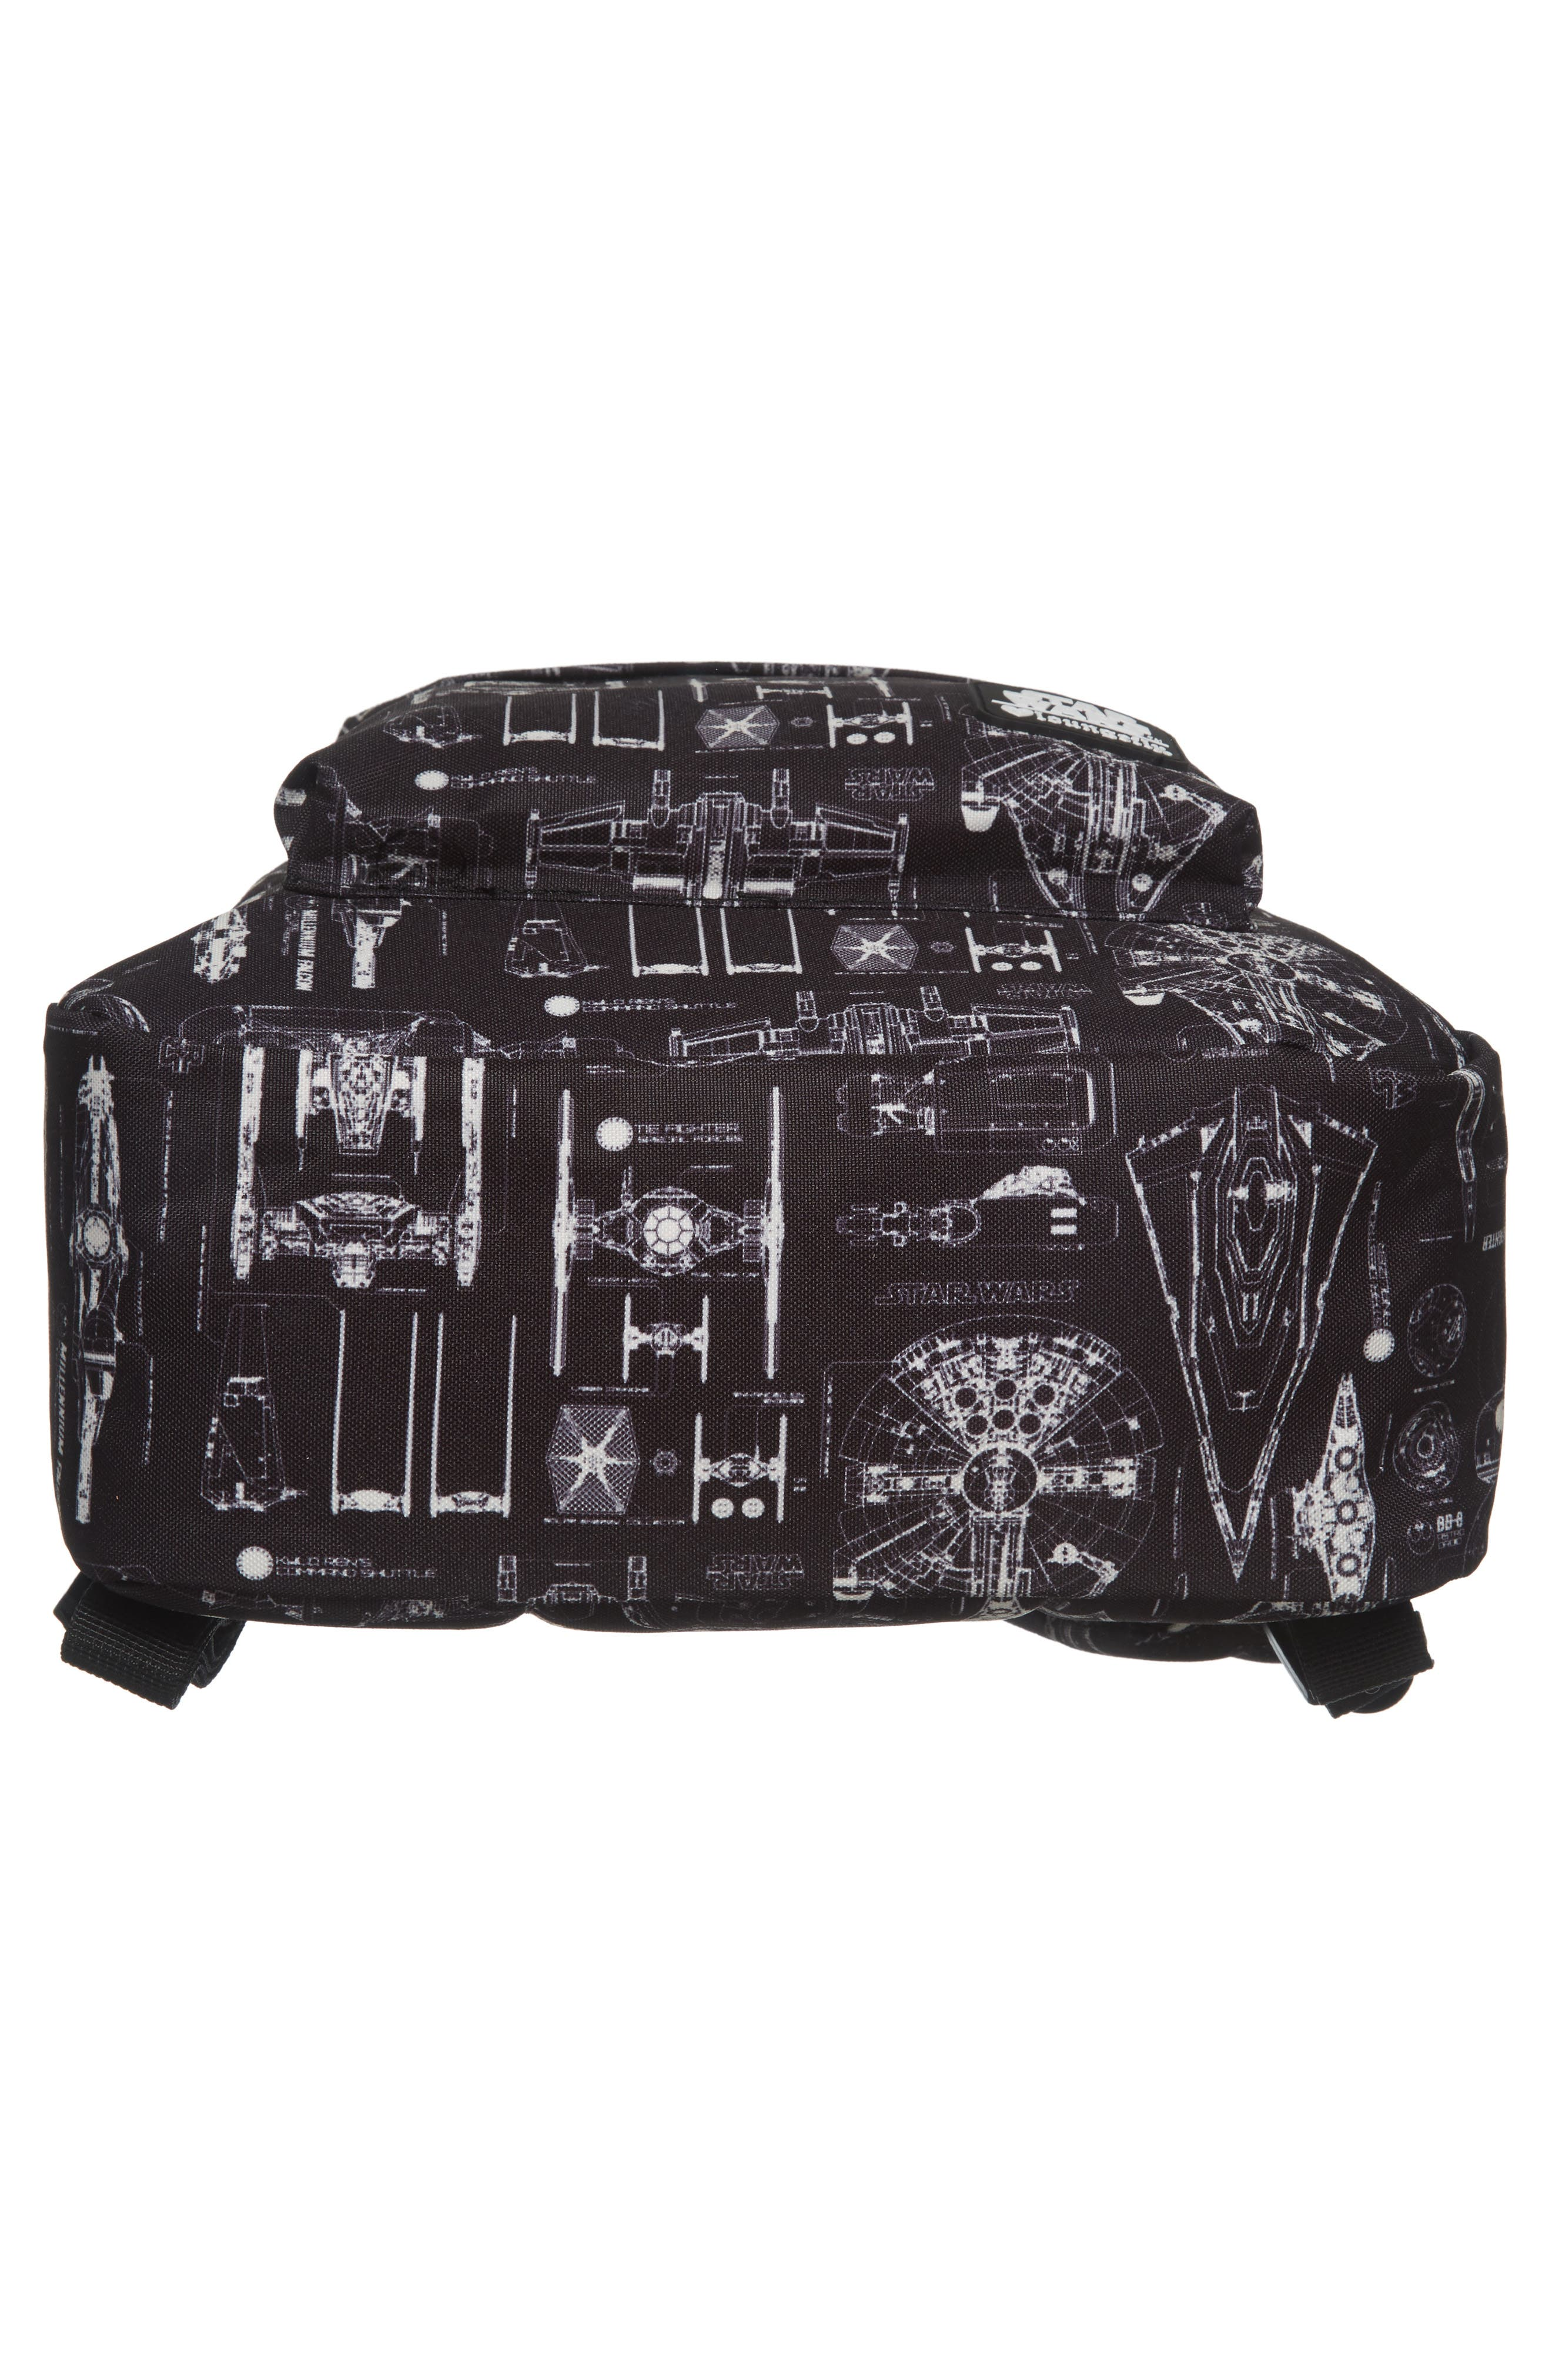 Star Wars<sup>™</sup> The Force Awakens Blueprint Backpack,                             Alternate thumbnail 6, color,                             001